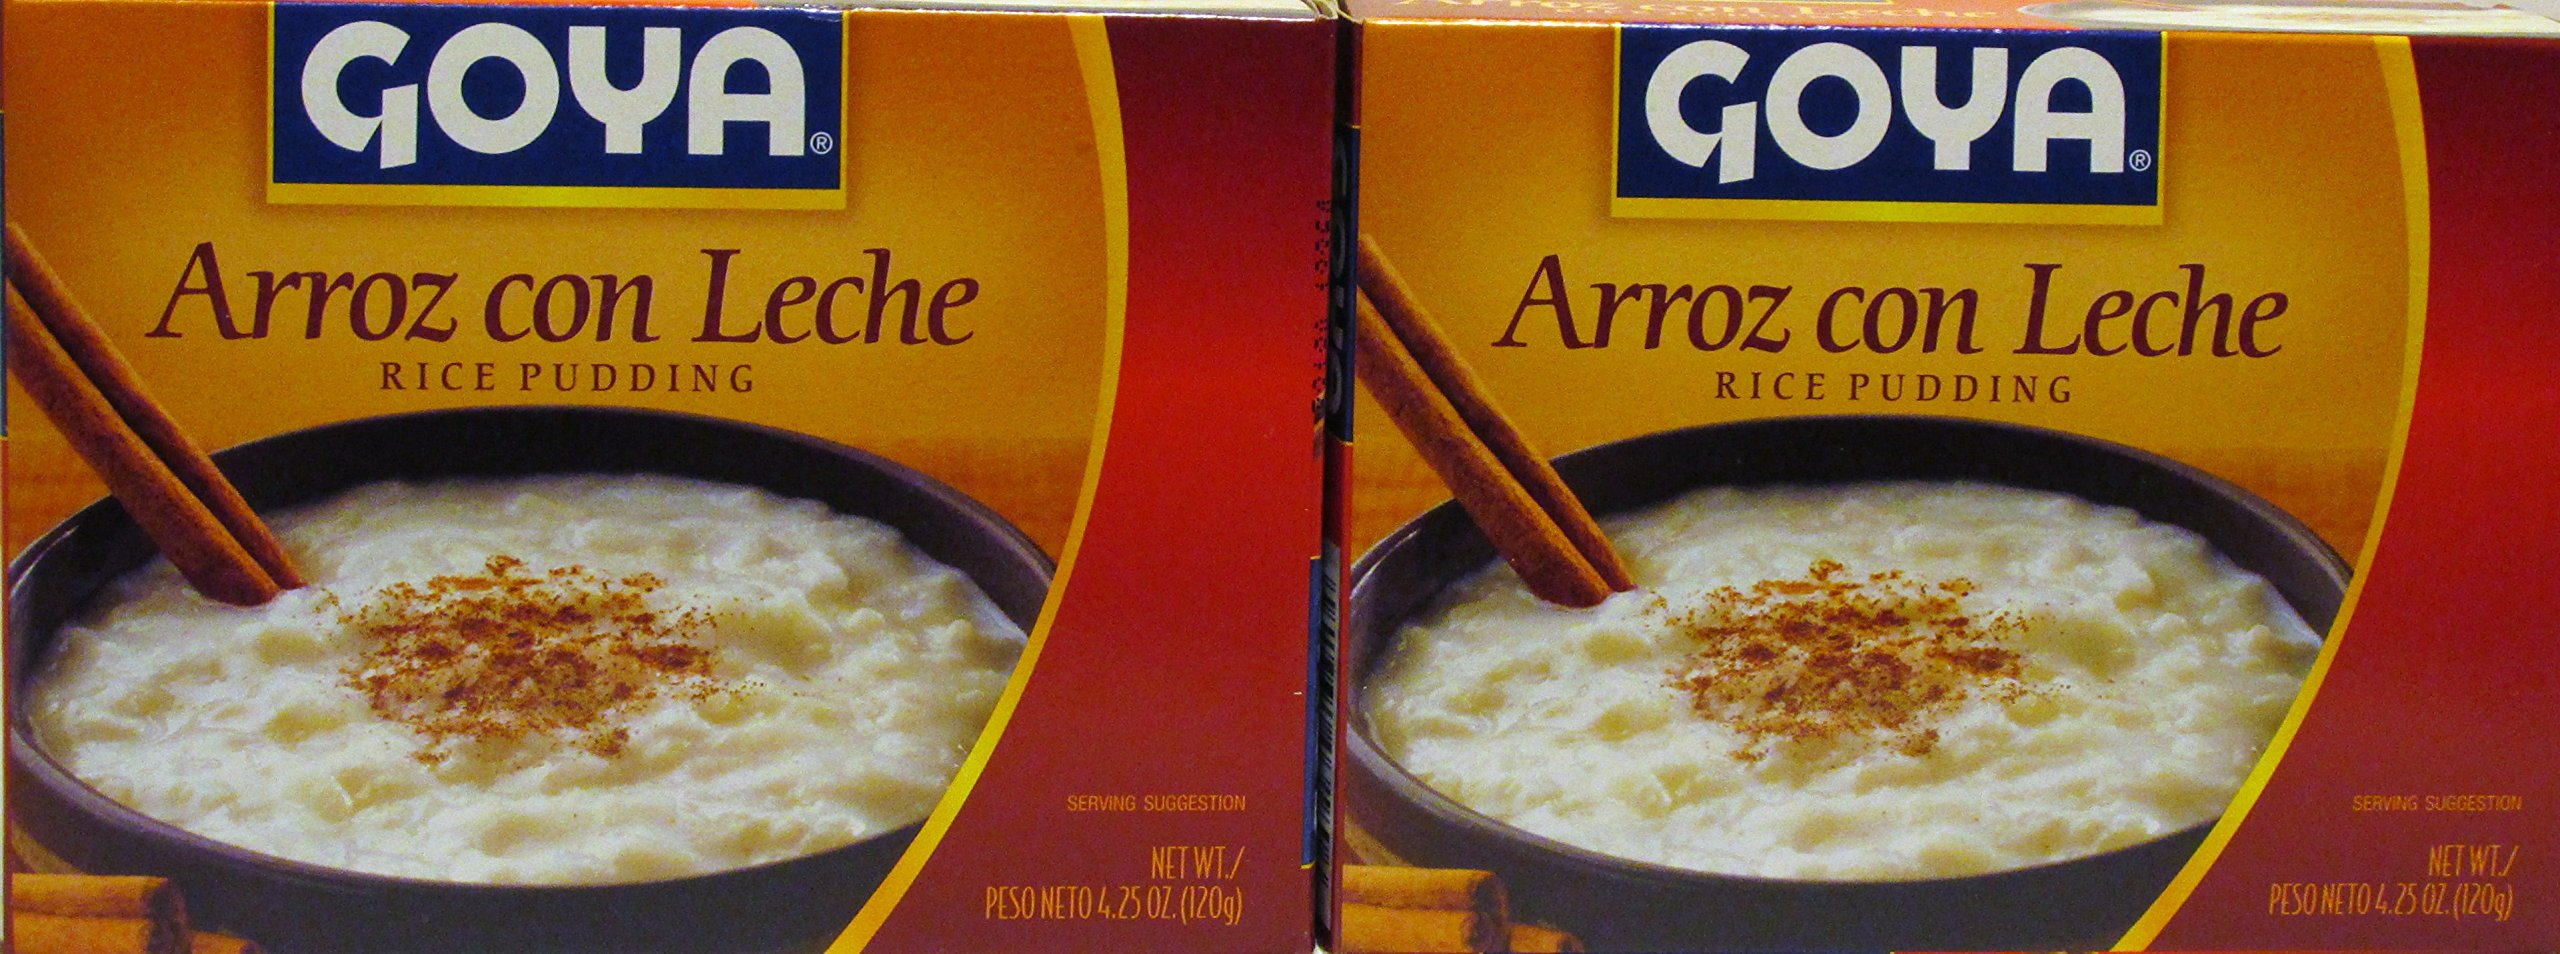 Goya Rice Pudding Arroz Con Leche 4.25 Oz (120g) Package (2 Pack)